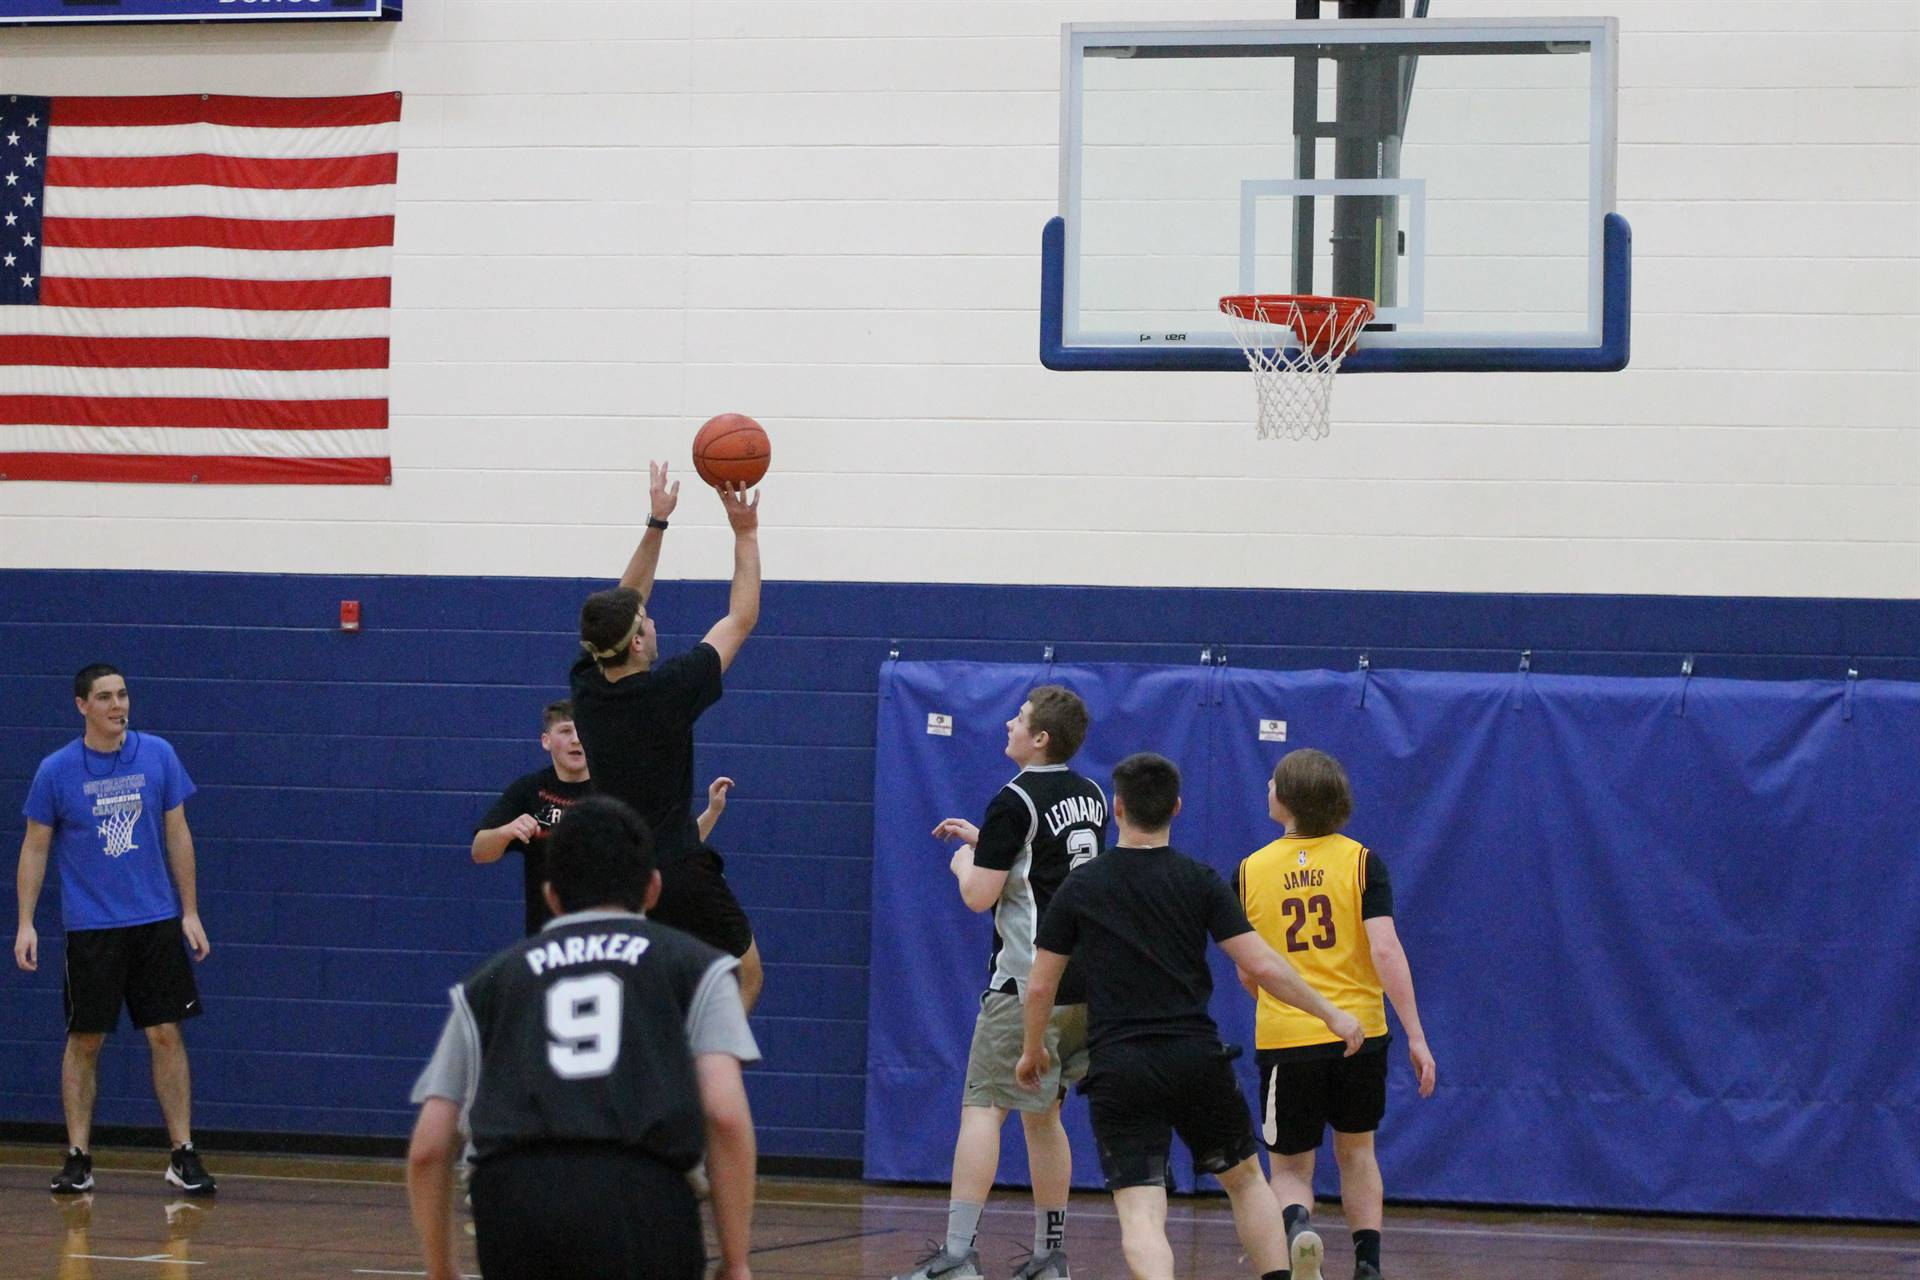 2019 Student Faculty Games